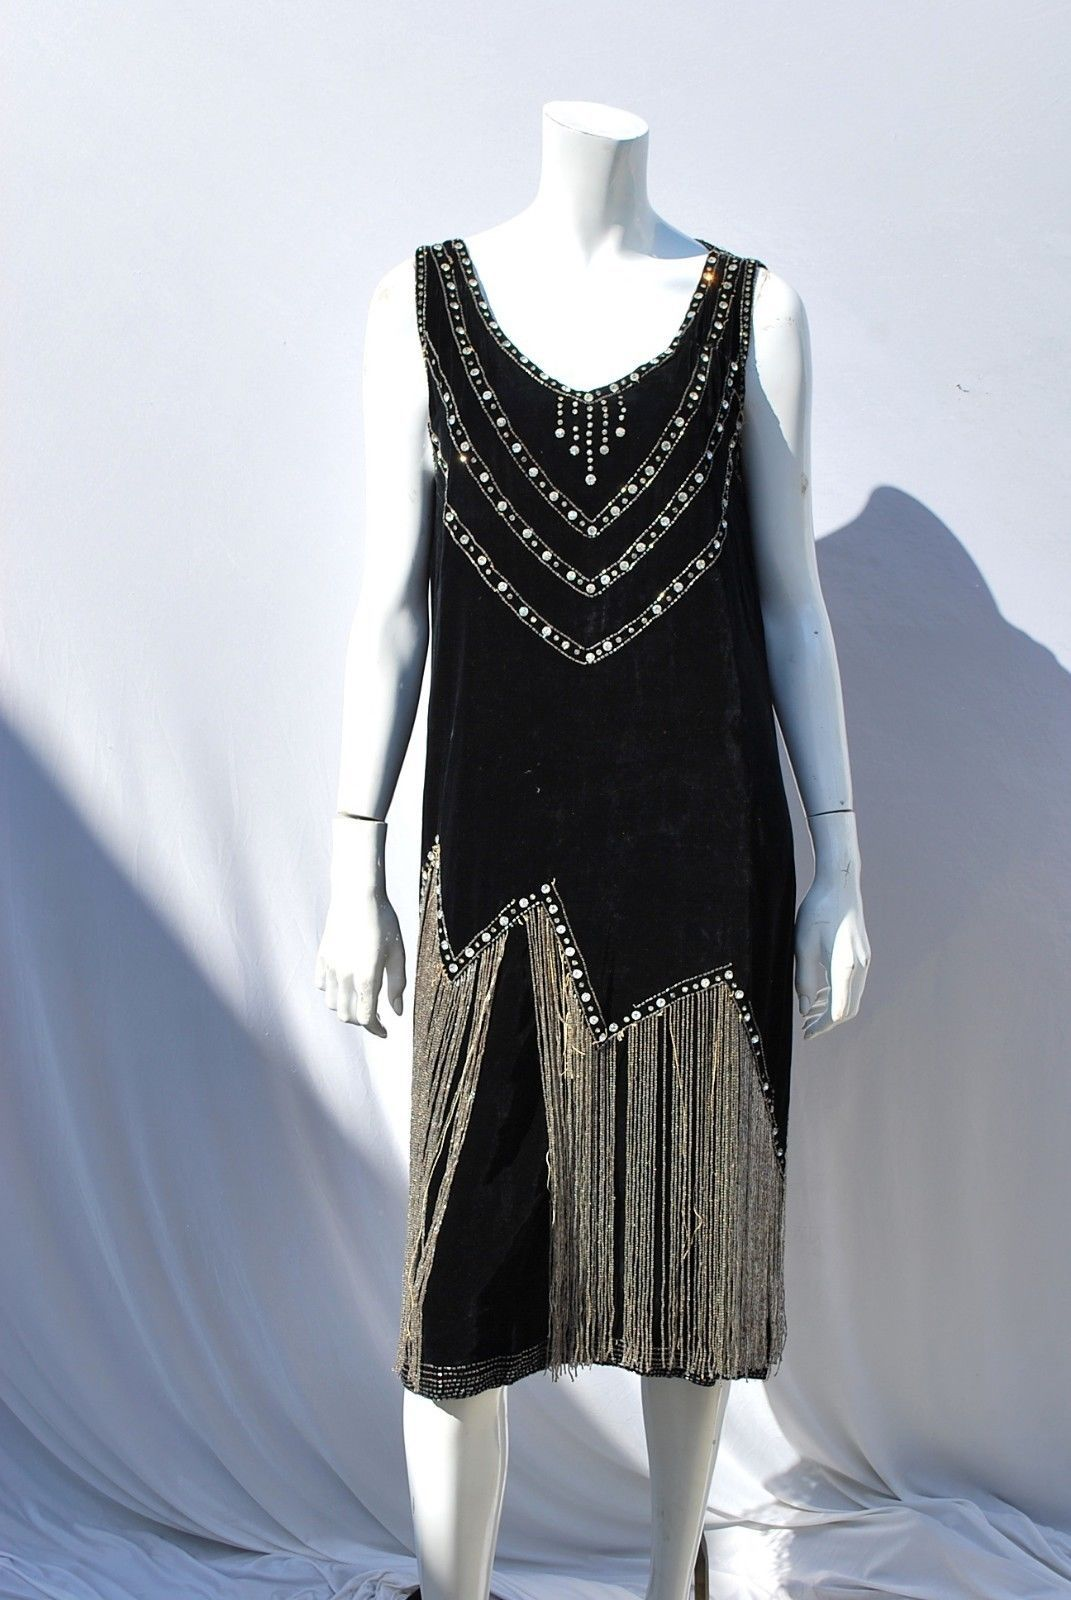 1920 lace dress  Vintage us FLAPPER Dress BEADED Art DECO jazz era party gatsby